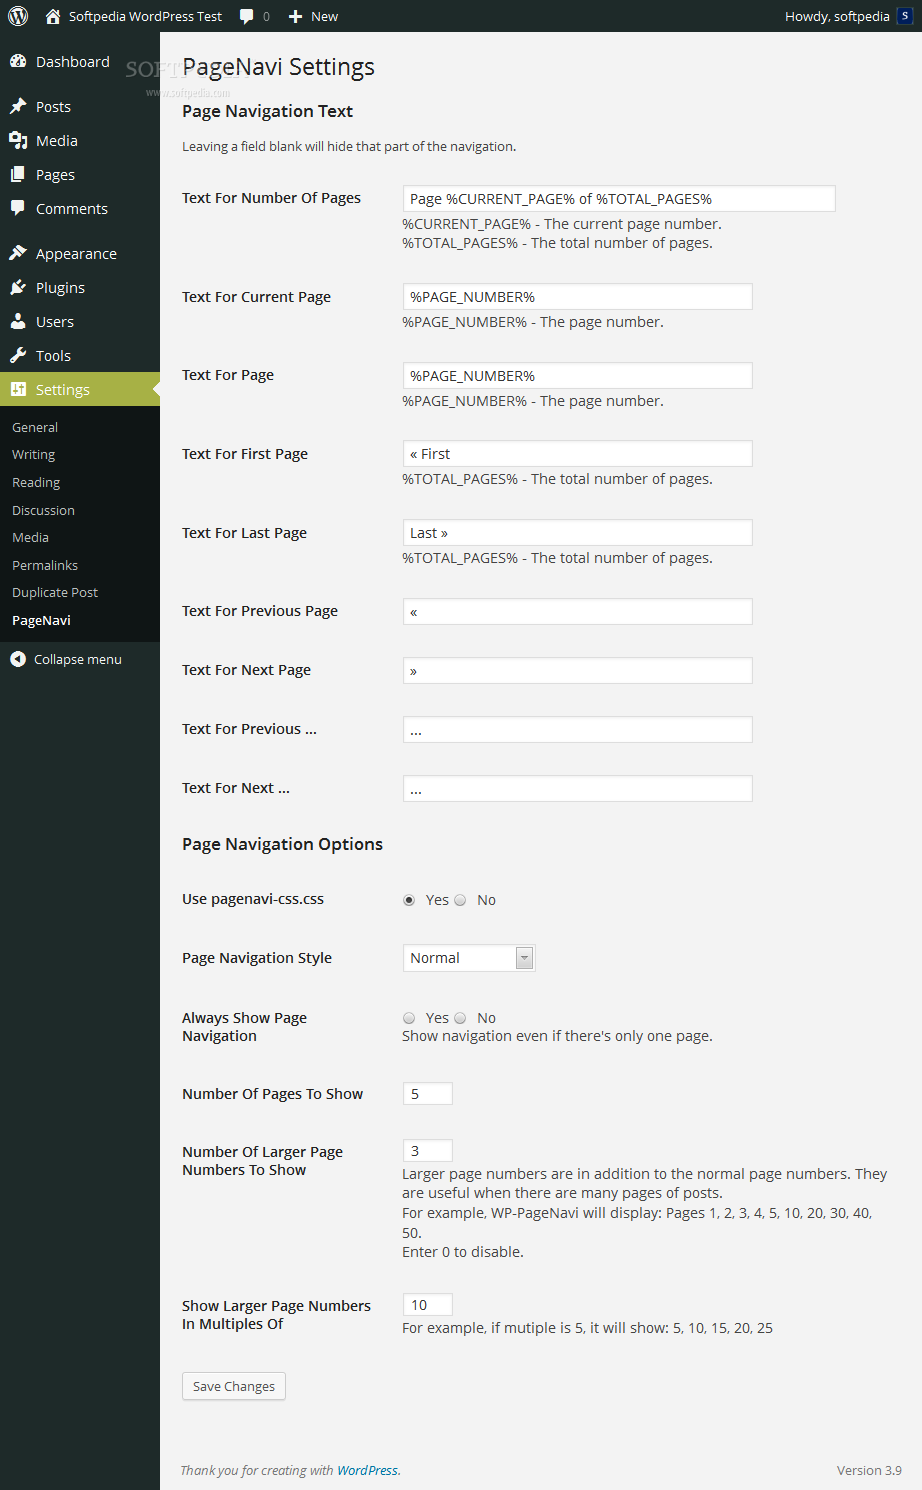 WP-PageNavi - A settings page is provided where administrators can customize the options of the WP-PageNavi pagination system